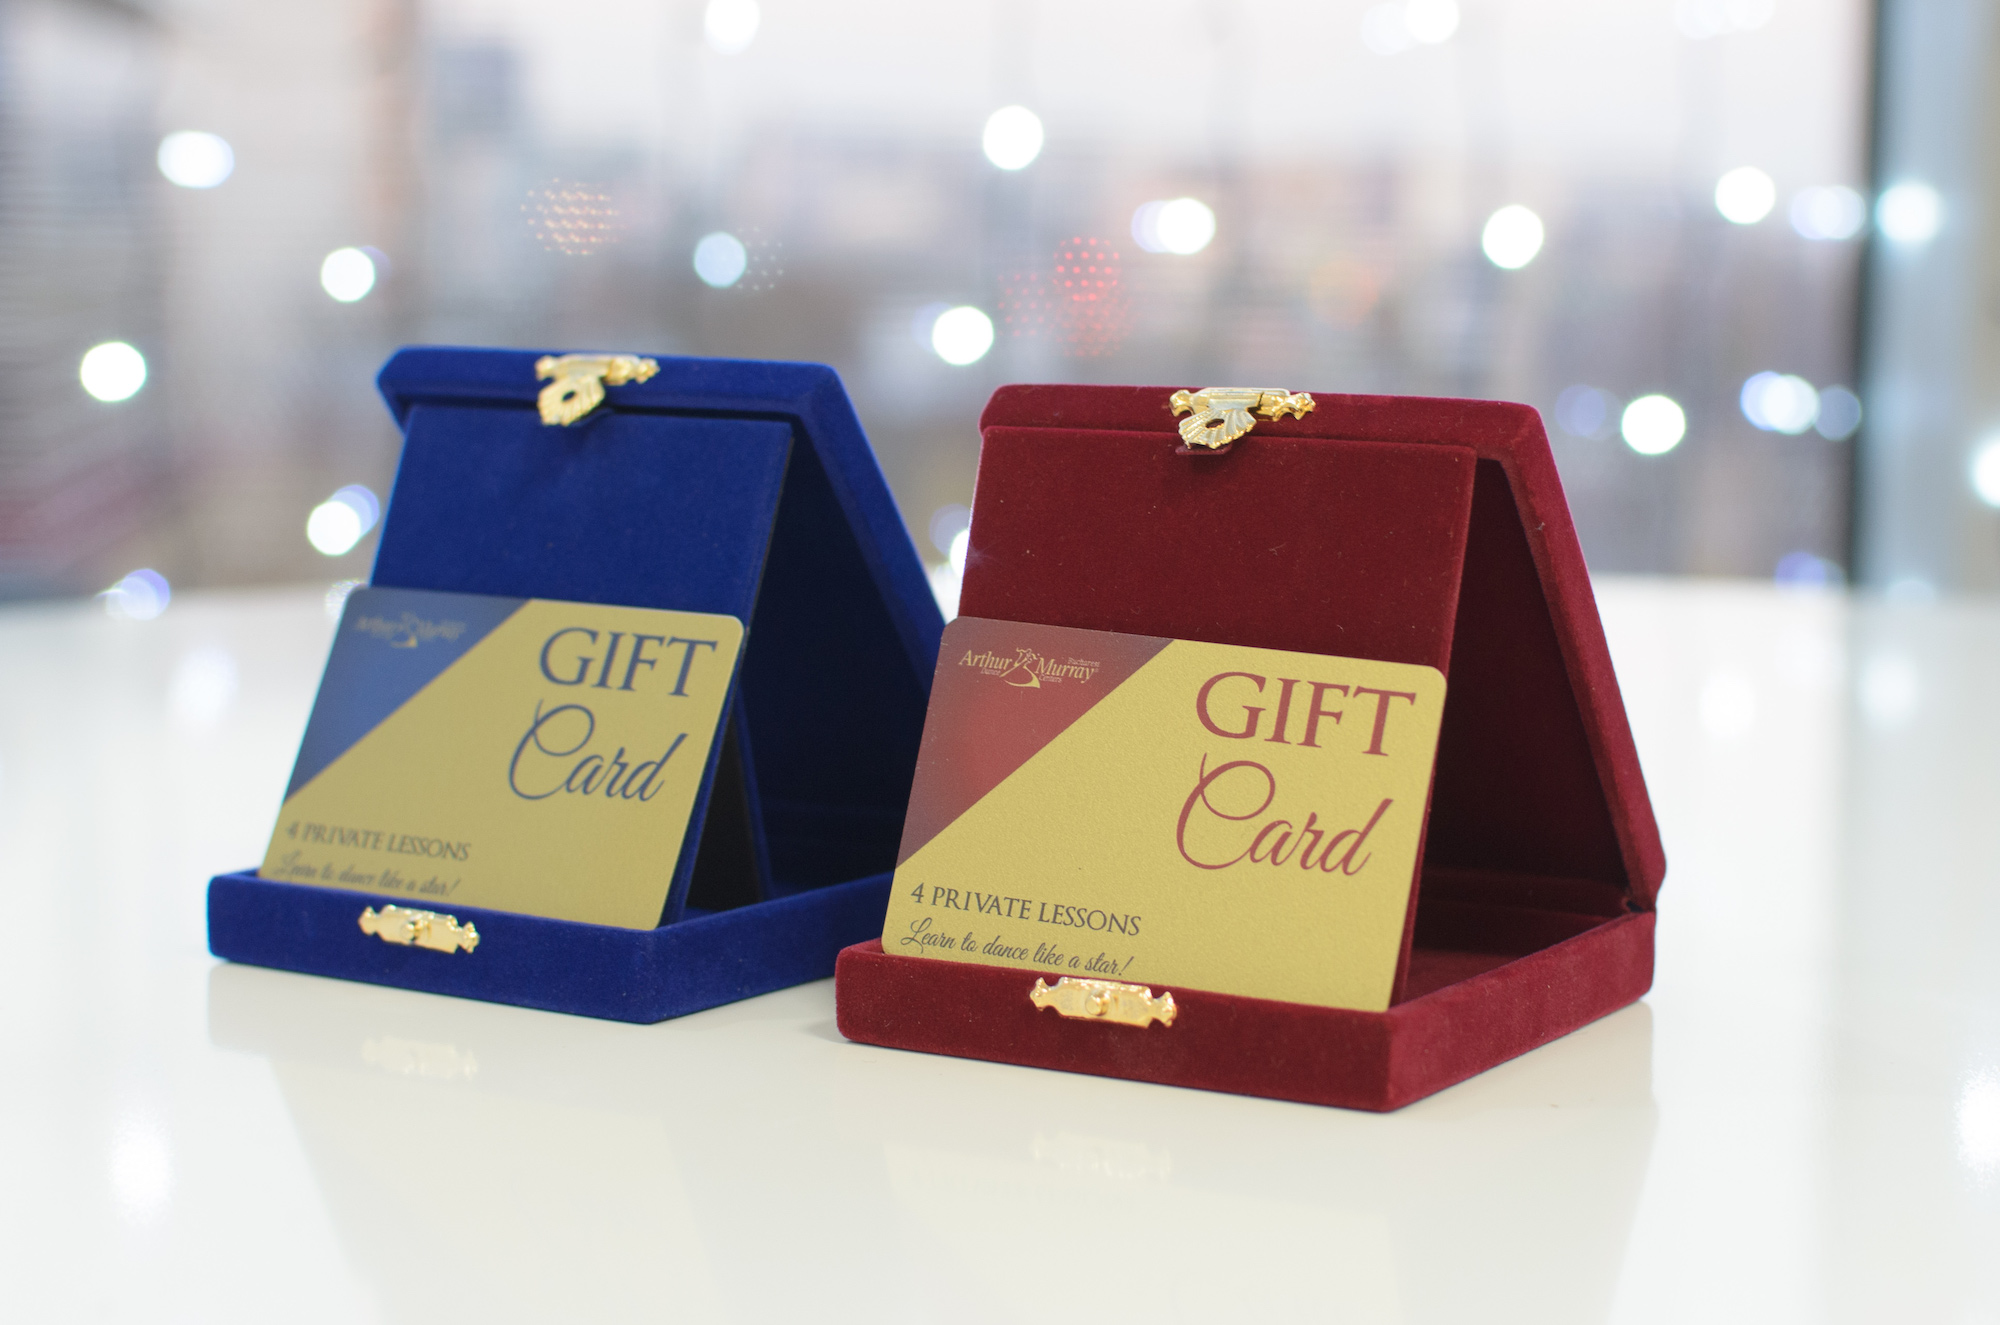 2_Gift Card